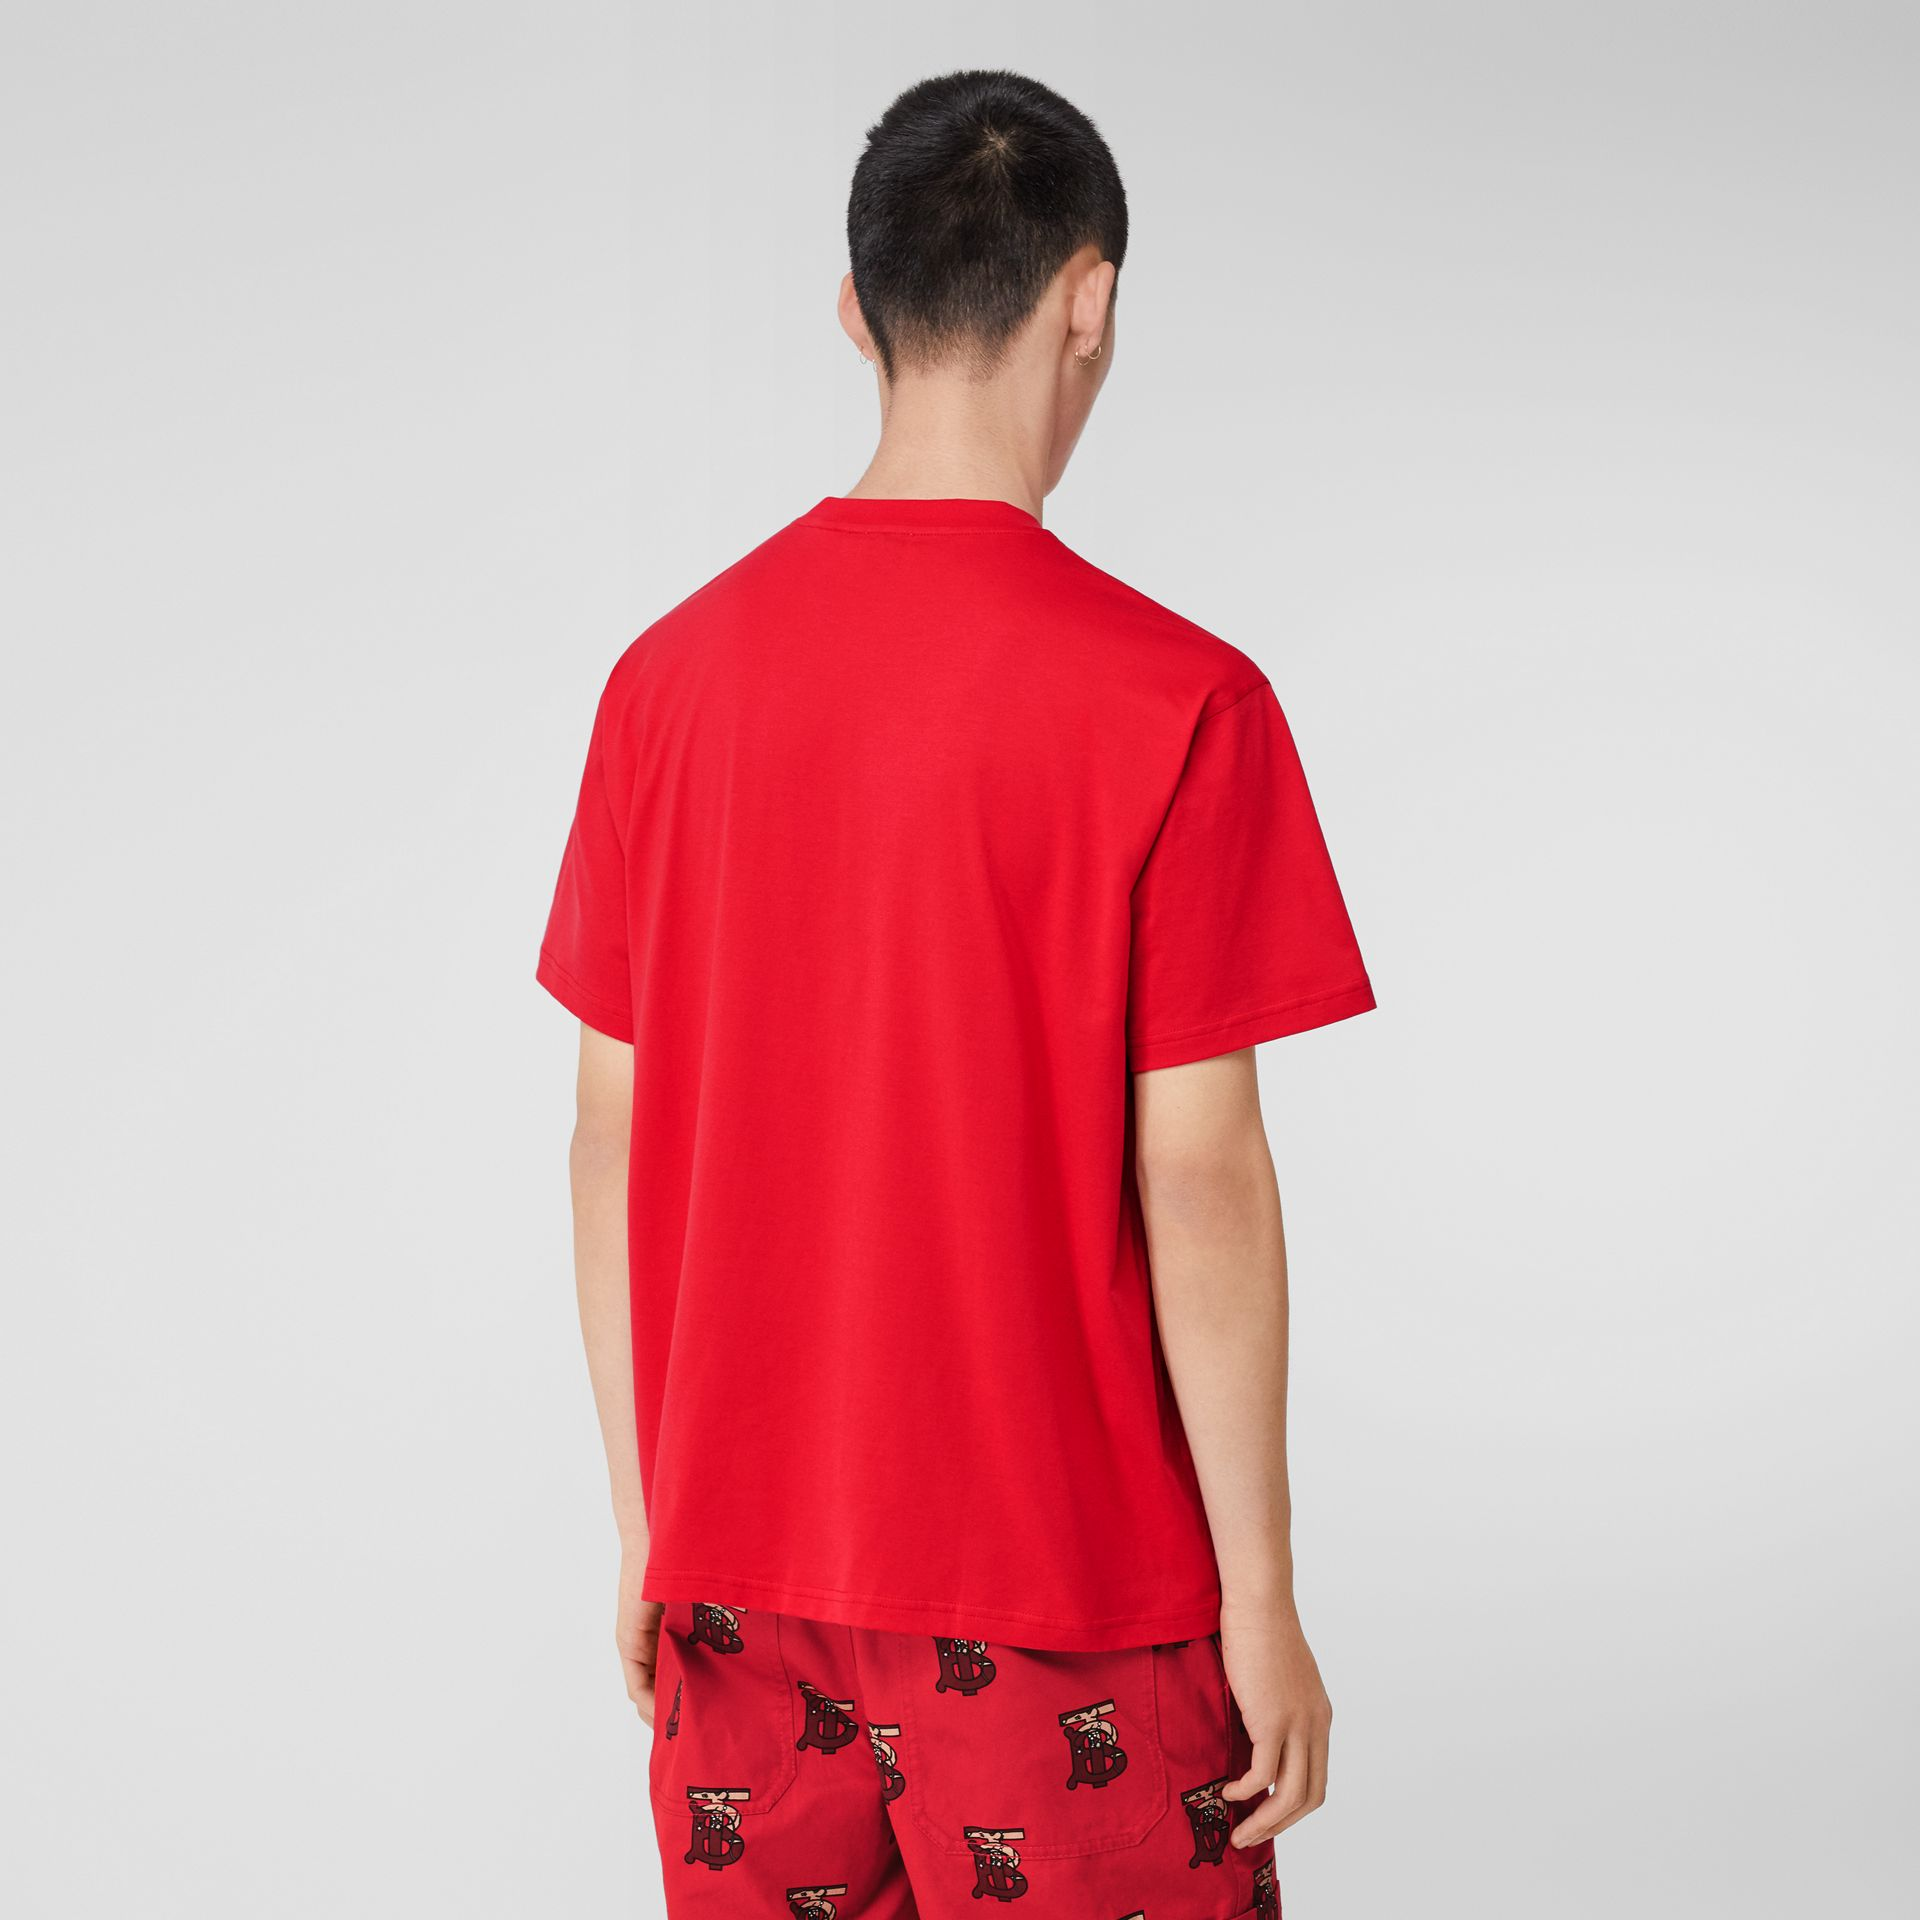 Monogram Motif Cotton Oversized T-shirt in Racing Red - Men | Burberry United Kingdom - gallery image 2